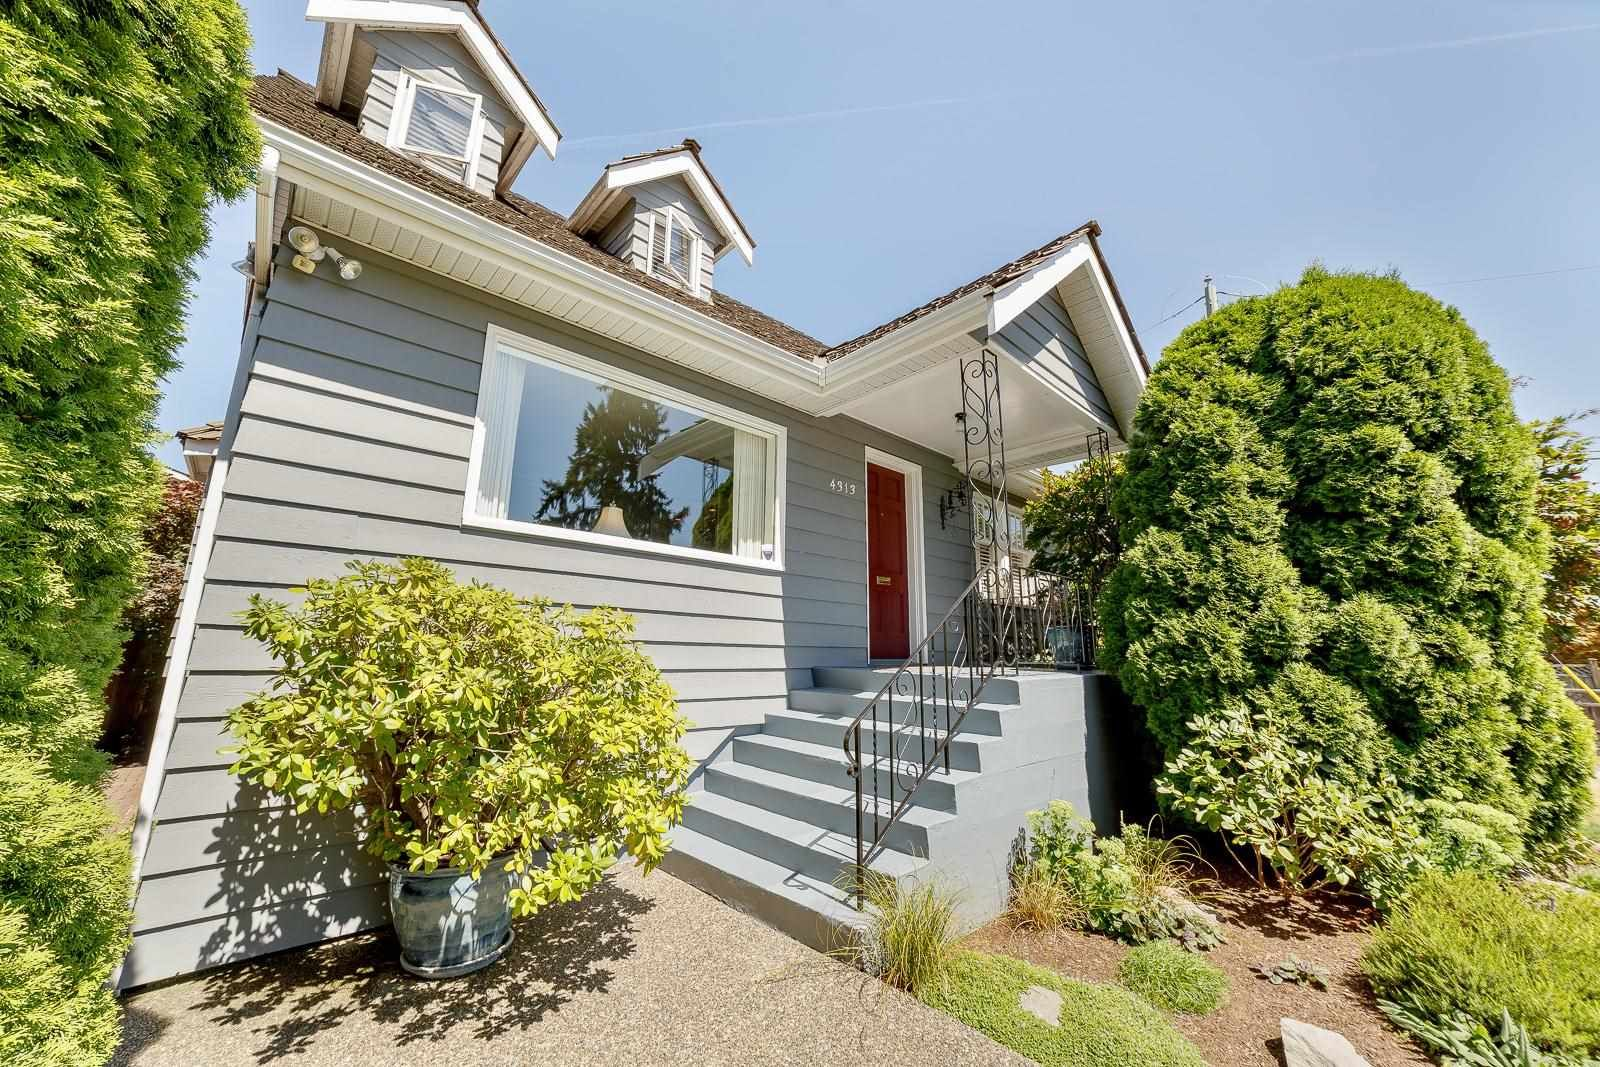 Main Photo: 4313 VICTORY Street in Burnaby: South Slope House for sale (Burnaby South)  : MLS®# R2607922